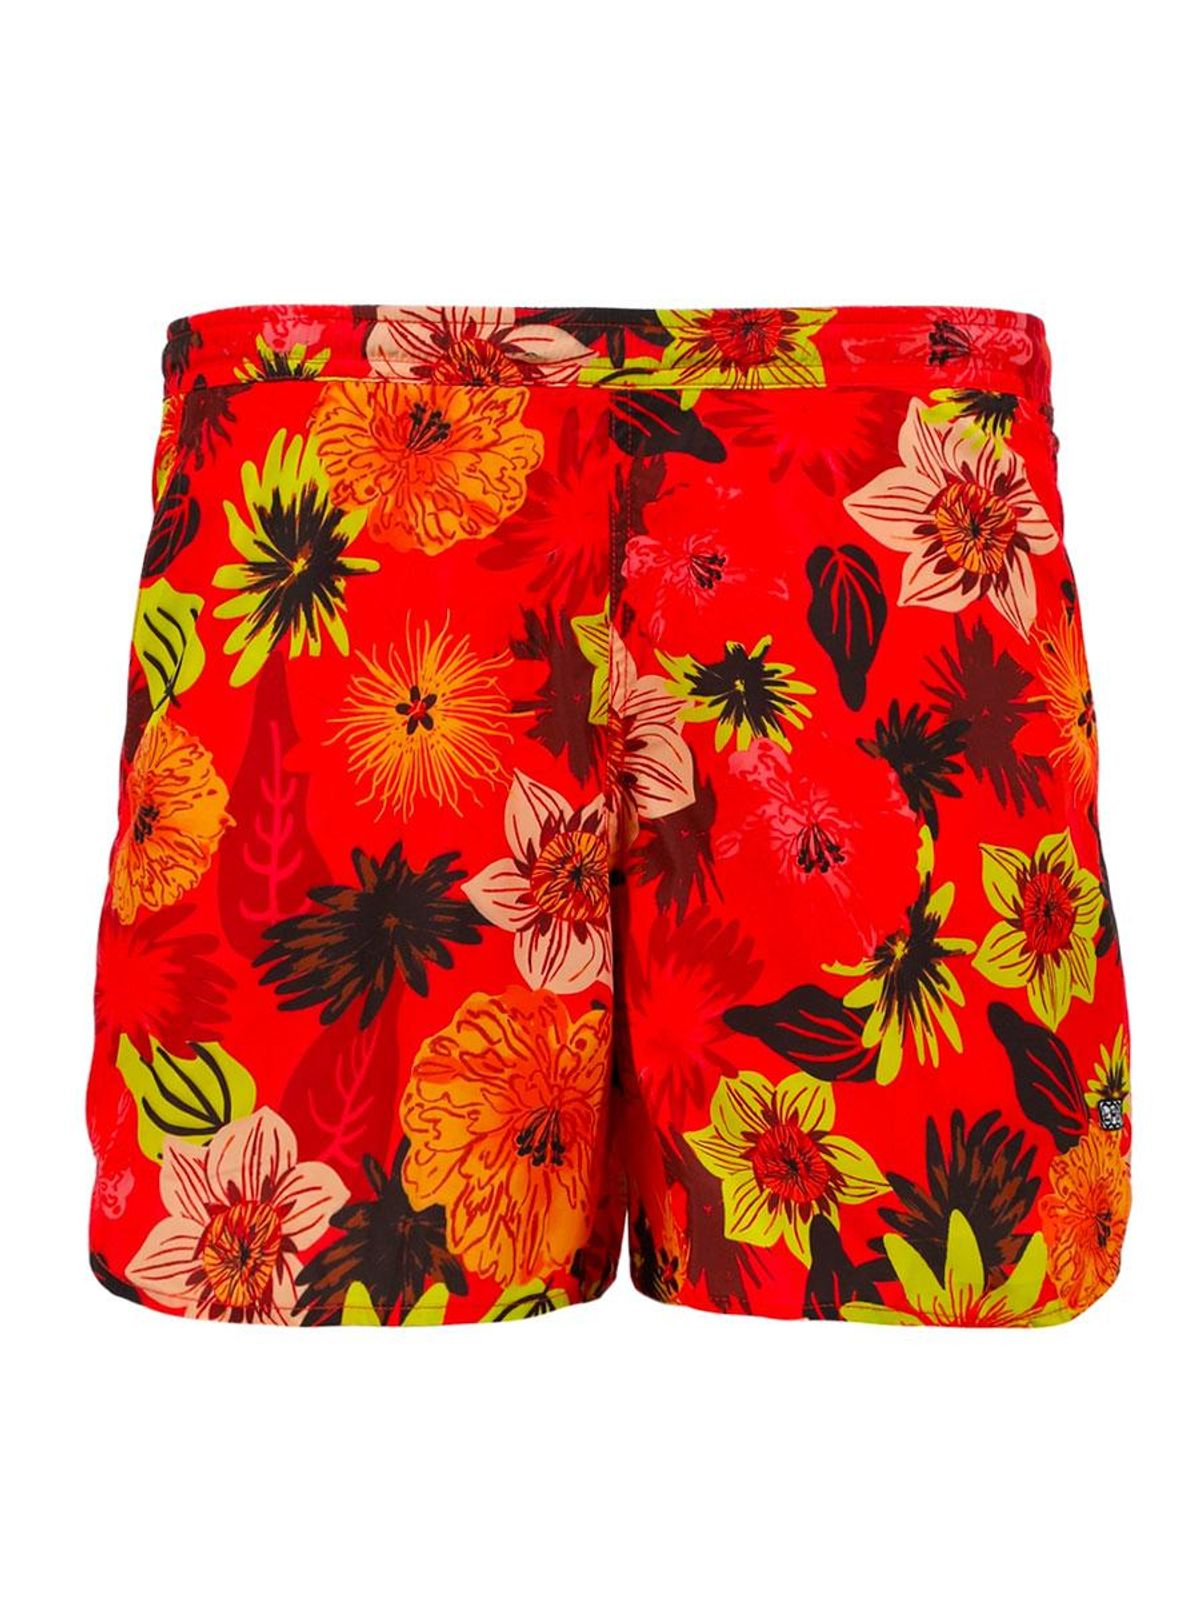 lhd niteroi short tropical floral red